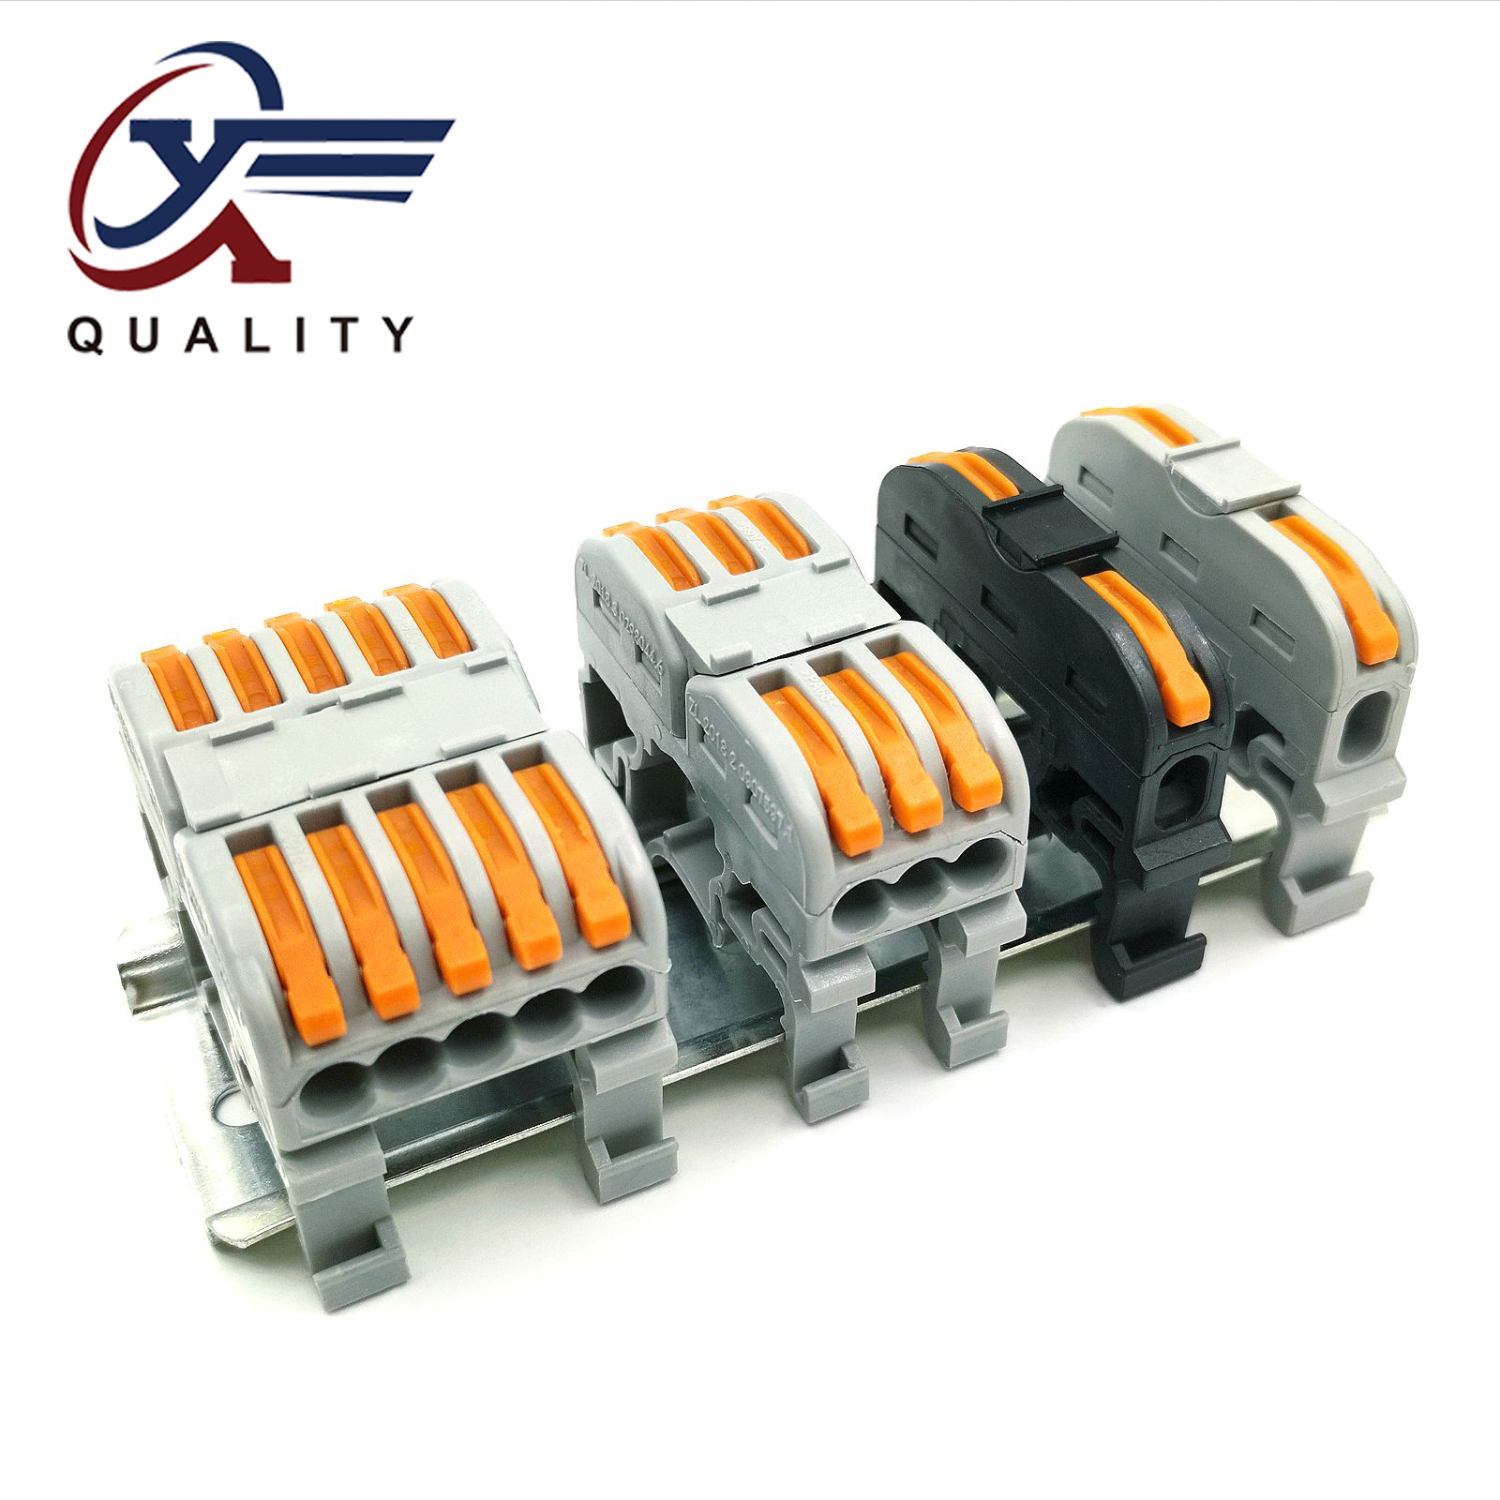 5pcs LSA-1 PCT-211 PCT-511 Rail Type Quick Connection Terminal Press Type Connector Instead Of UK2.5B Terminal Block